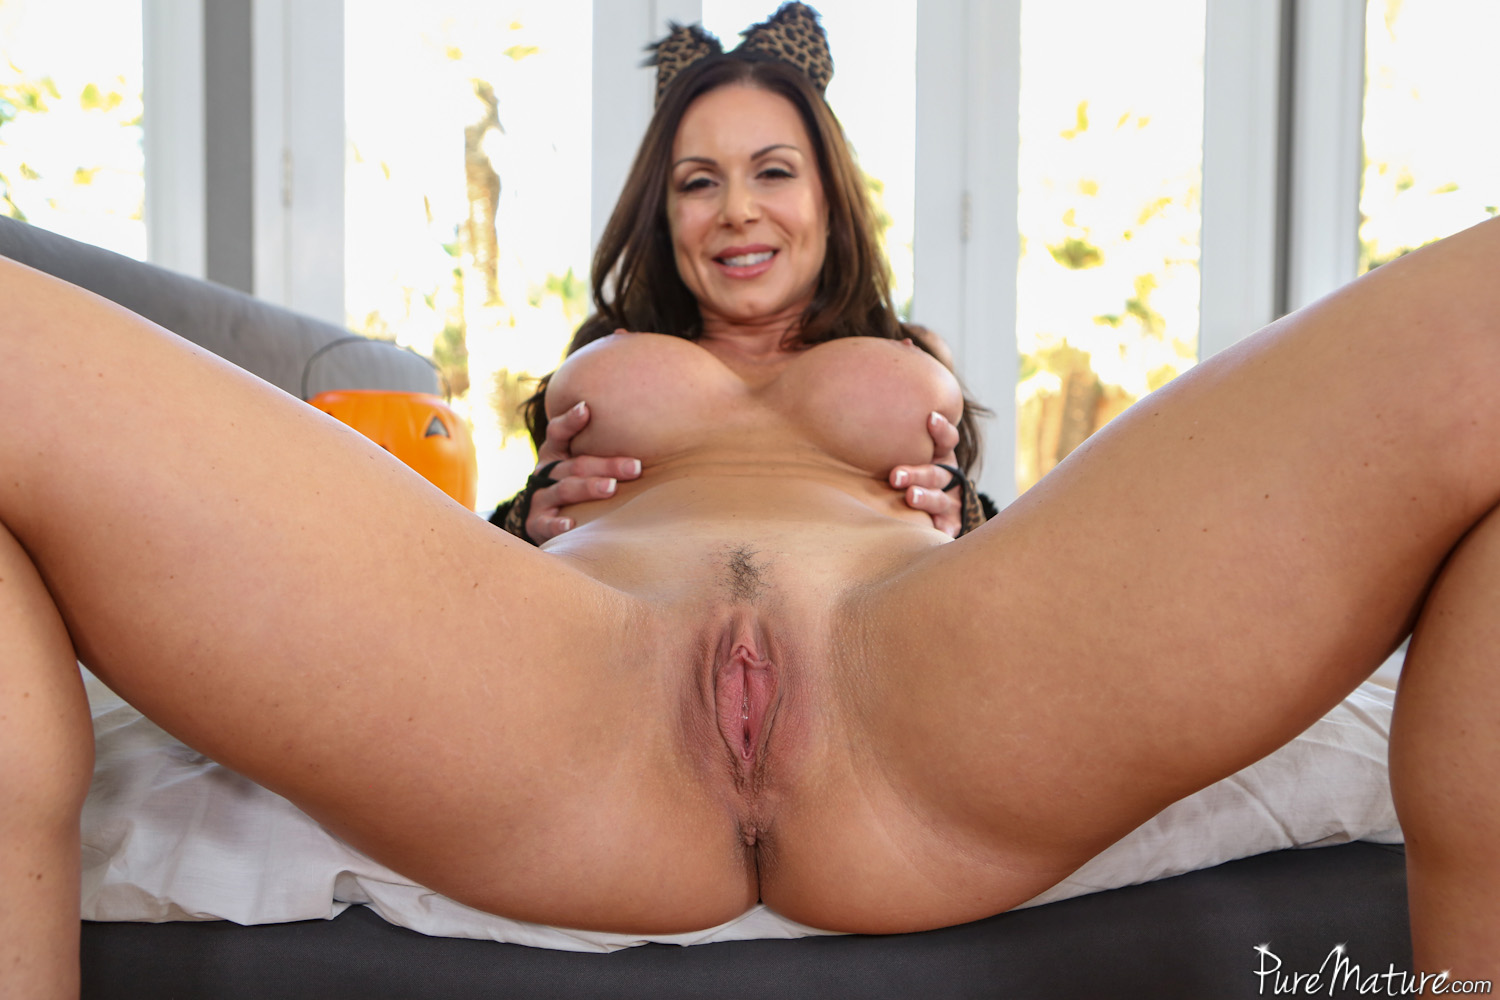 Hot mom sex billede